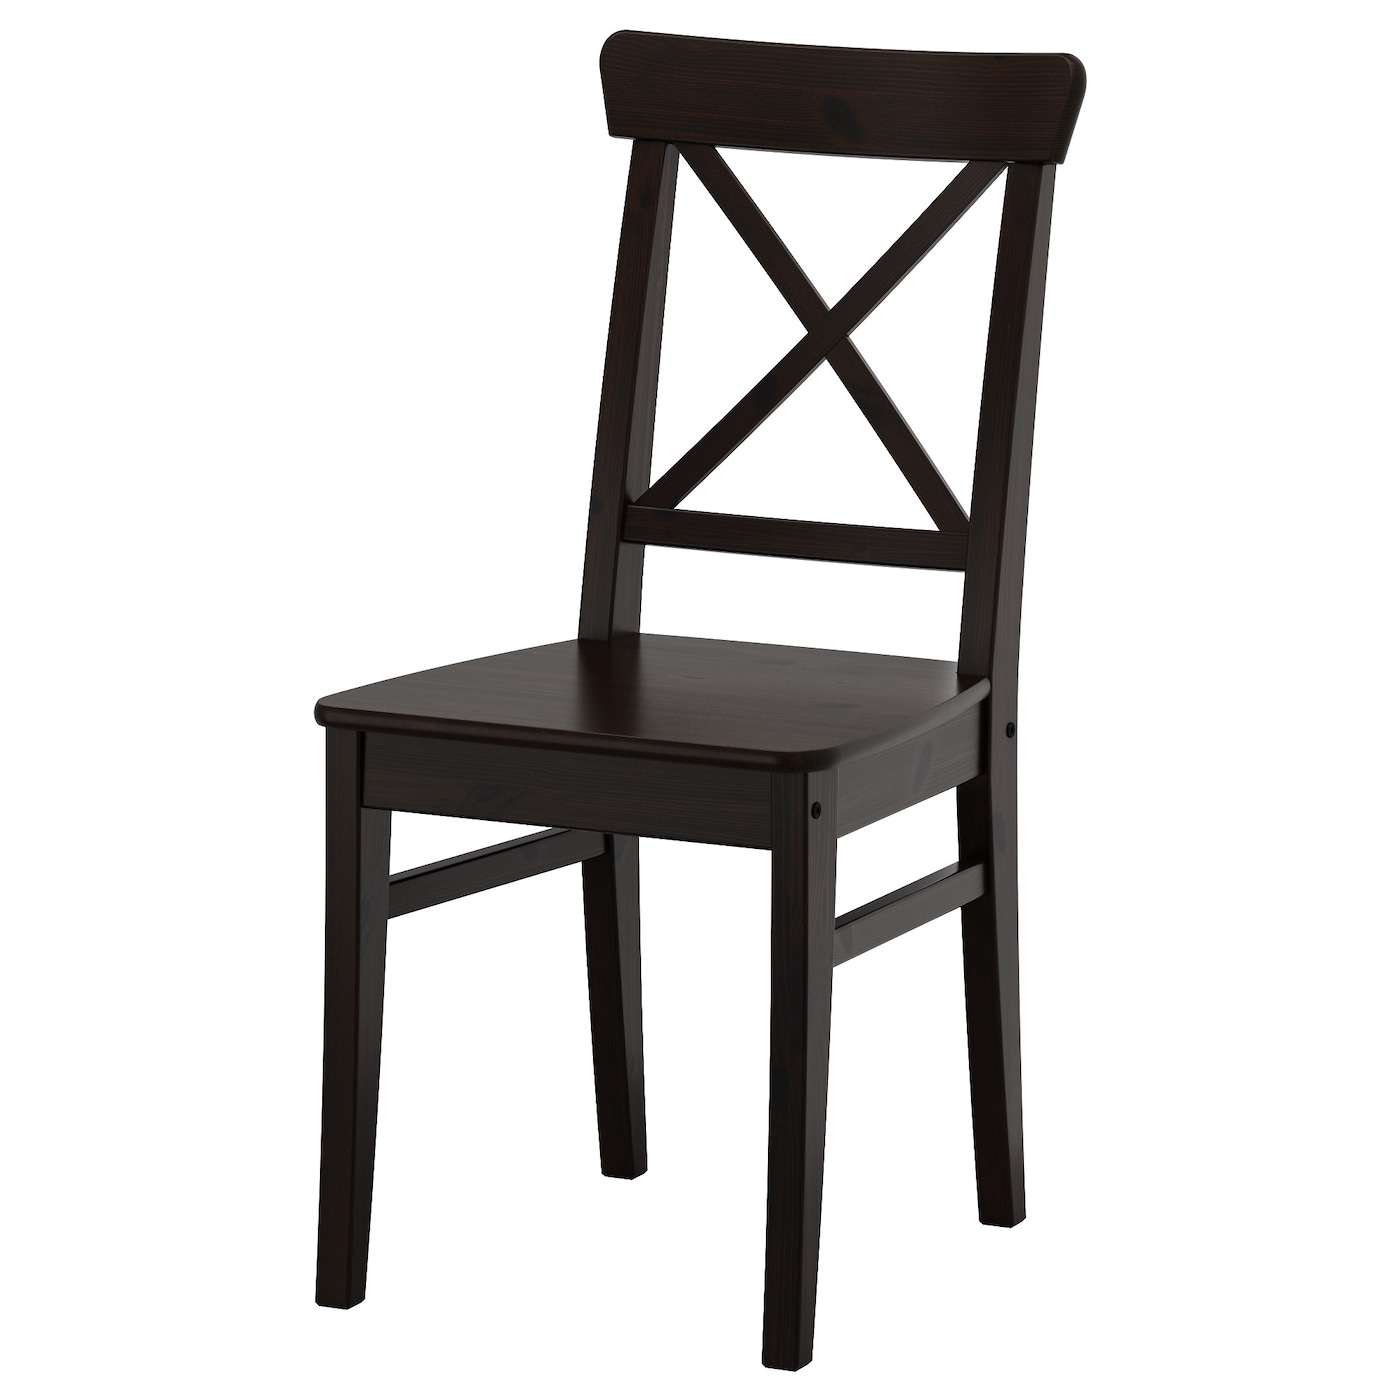 Ingolf chair brown black ikea for Bois de la chaise